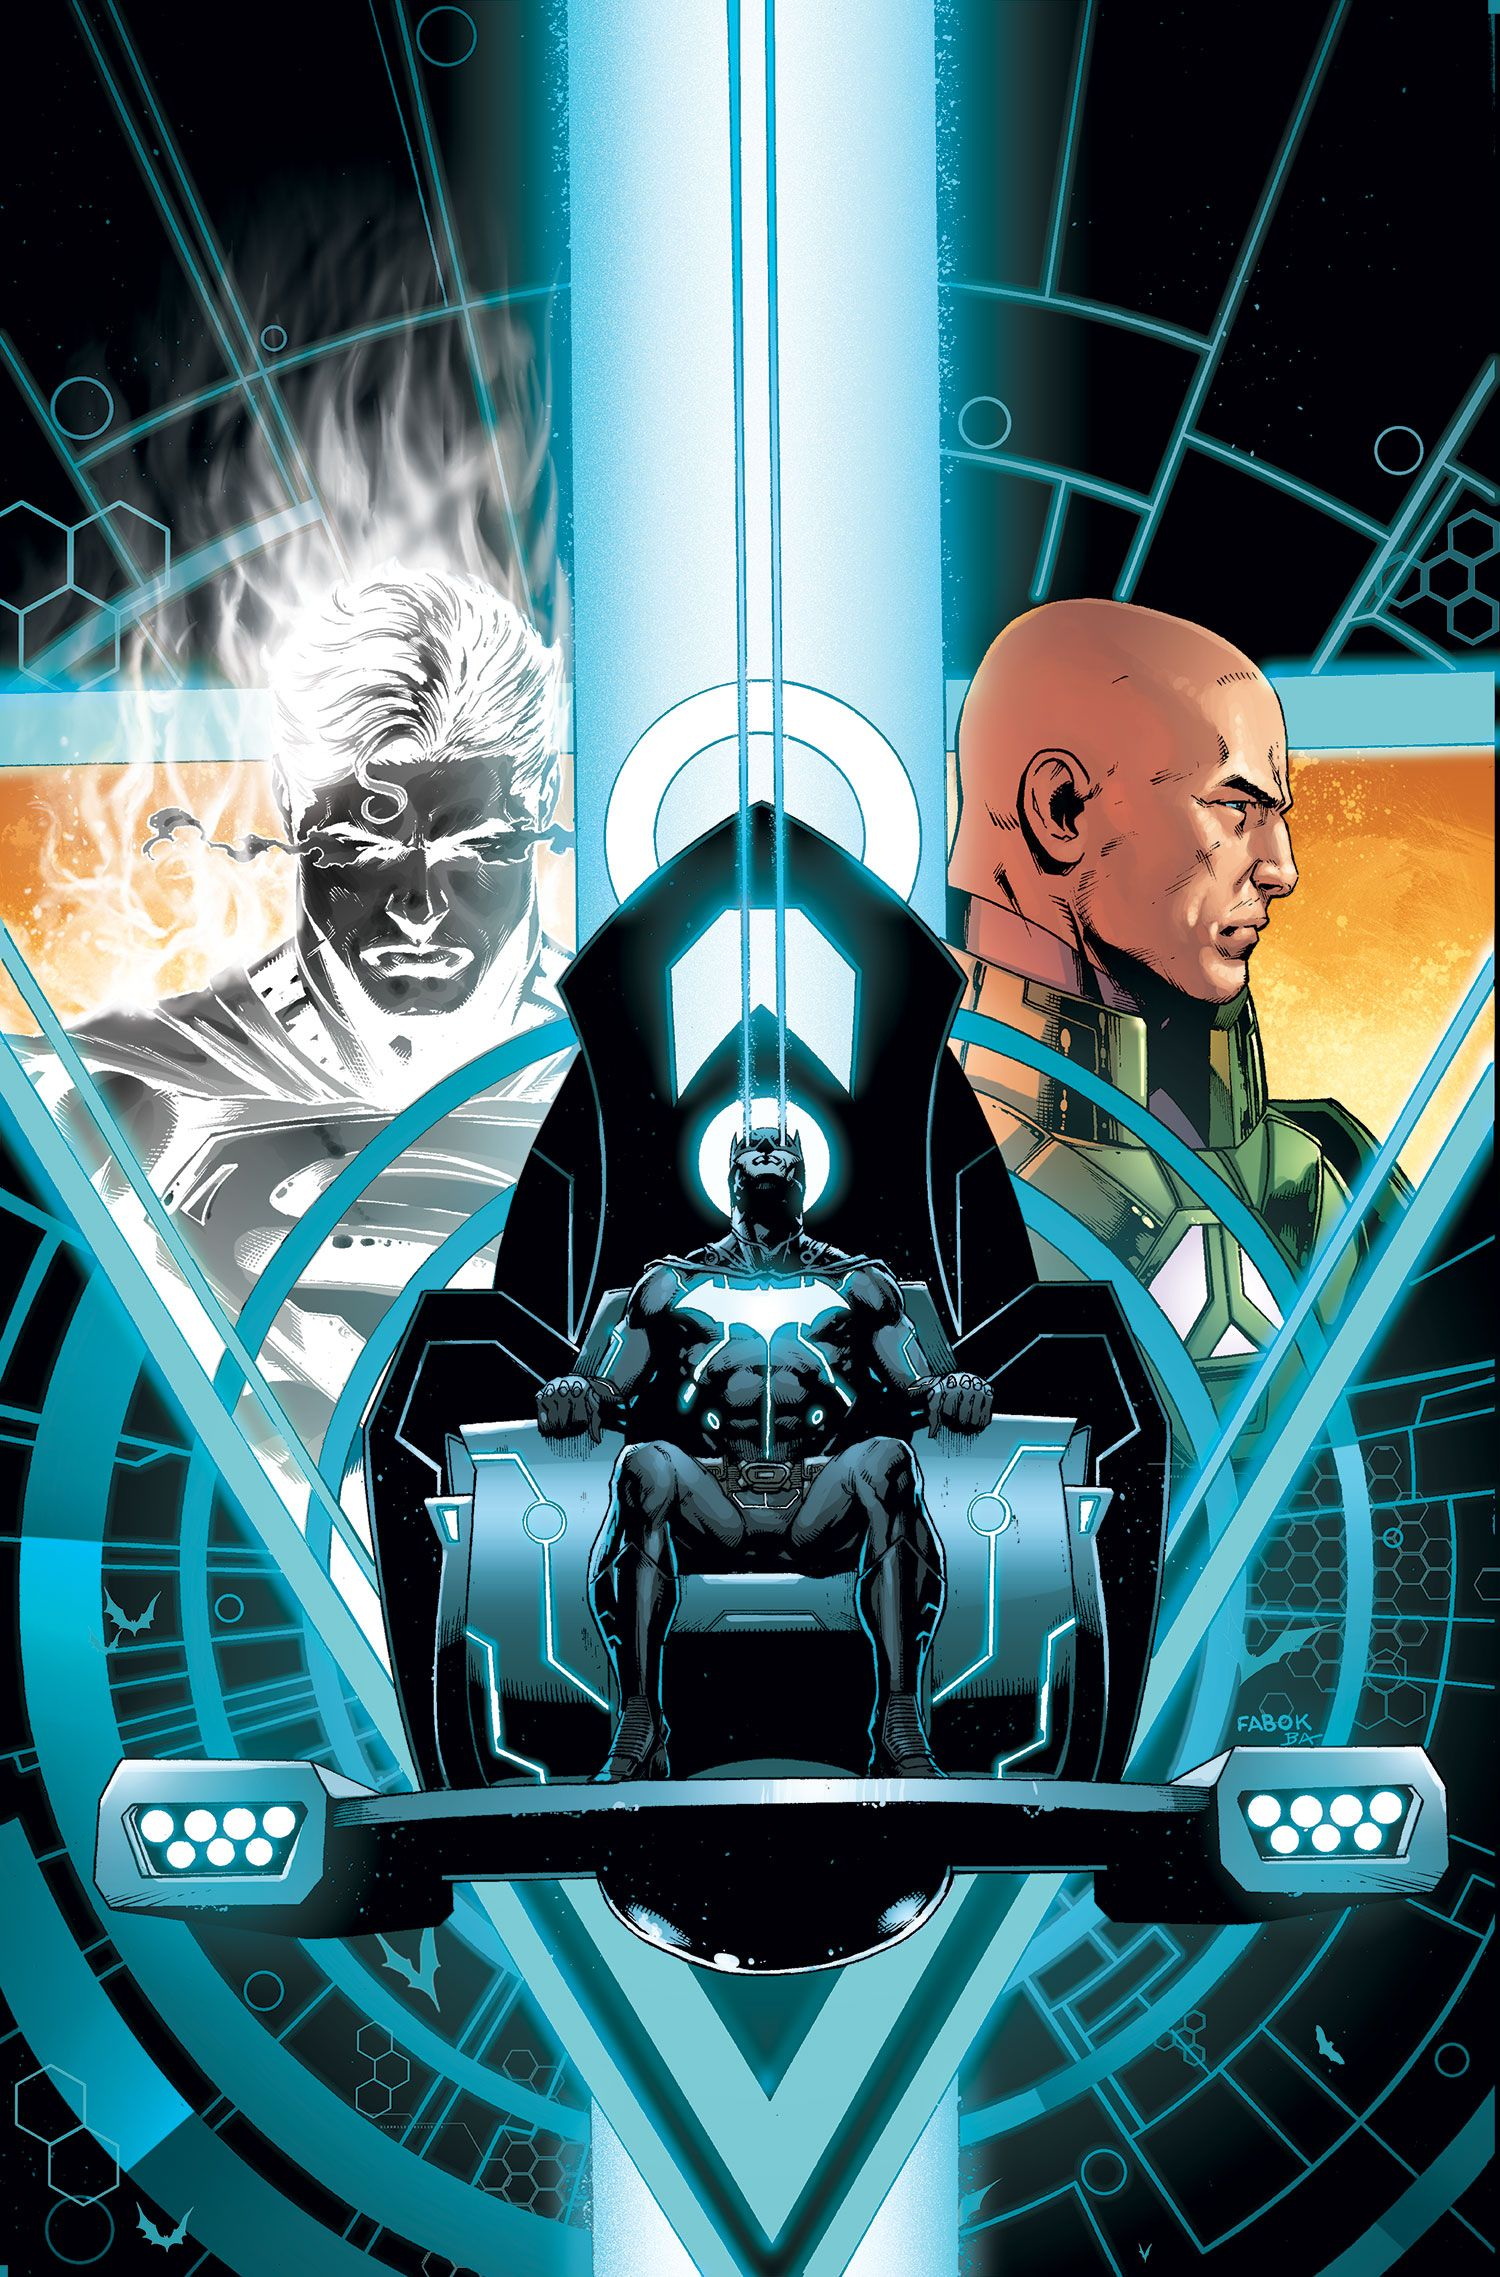 #Justice #League #Fan #Art. (Justice League Darkseid War, Chapter Three: Taken. Vol.2 #43 Cover) By: Jason Fabok & Brad Anderson. ÅWESOMENESS!!!™ ÅÅÅ+